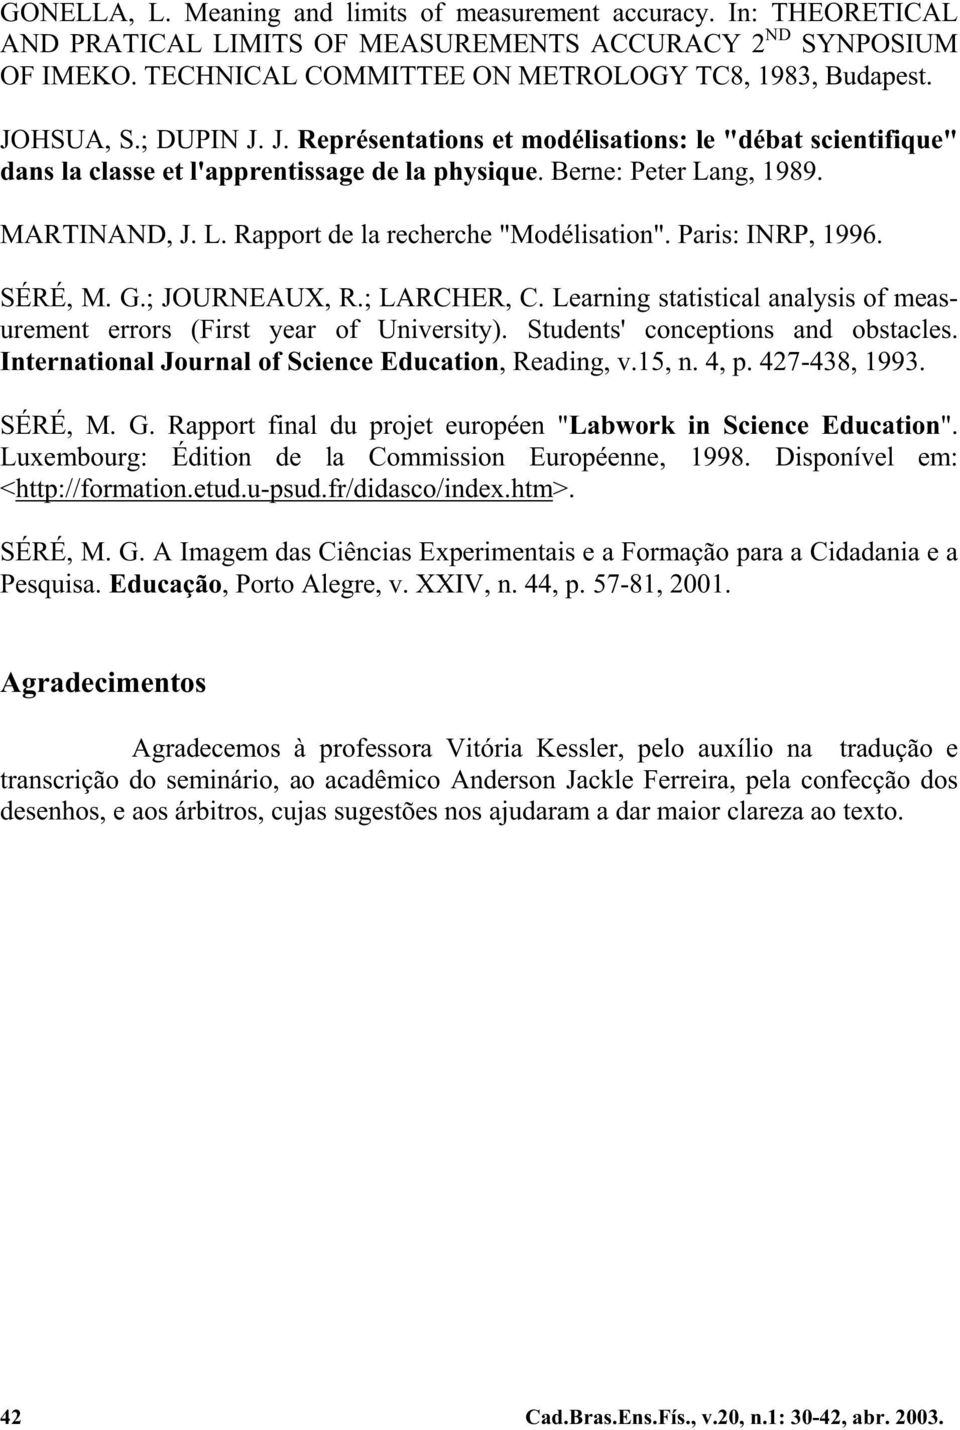 Paris: INRP, 1996. SÉRÉ, M. G.; JOURNEAUX, R.; LARCHER, C. Learning statistical analysis of measurement errors (First year of University). Students' conceptions and obstacles.